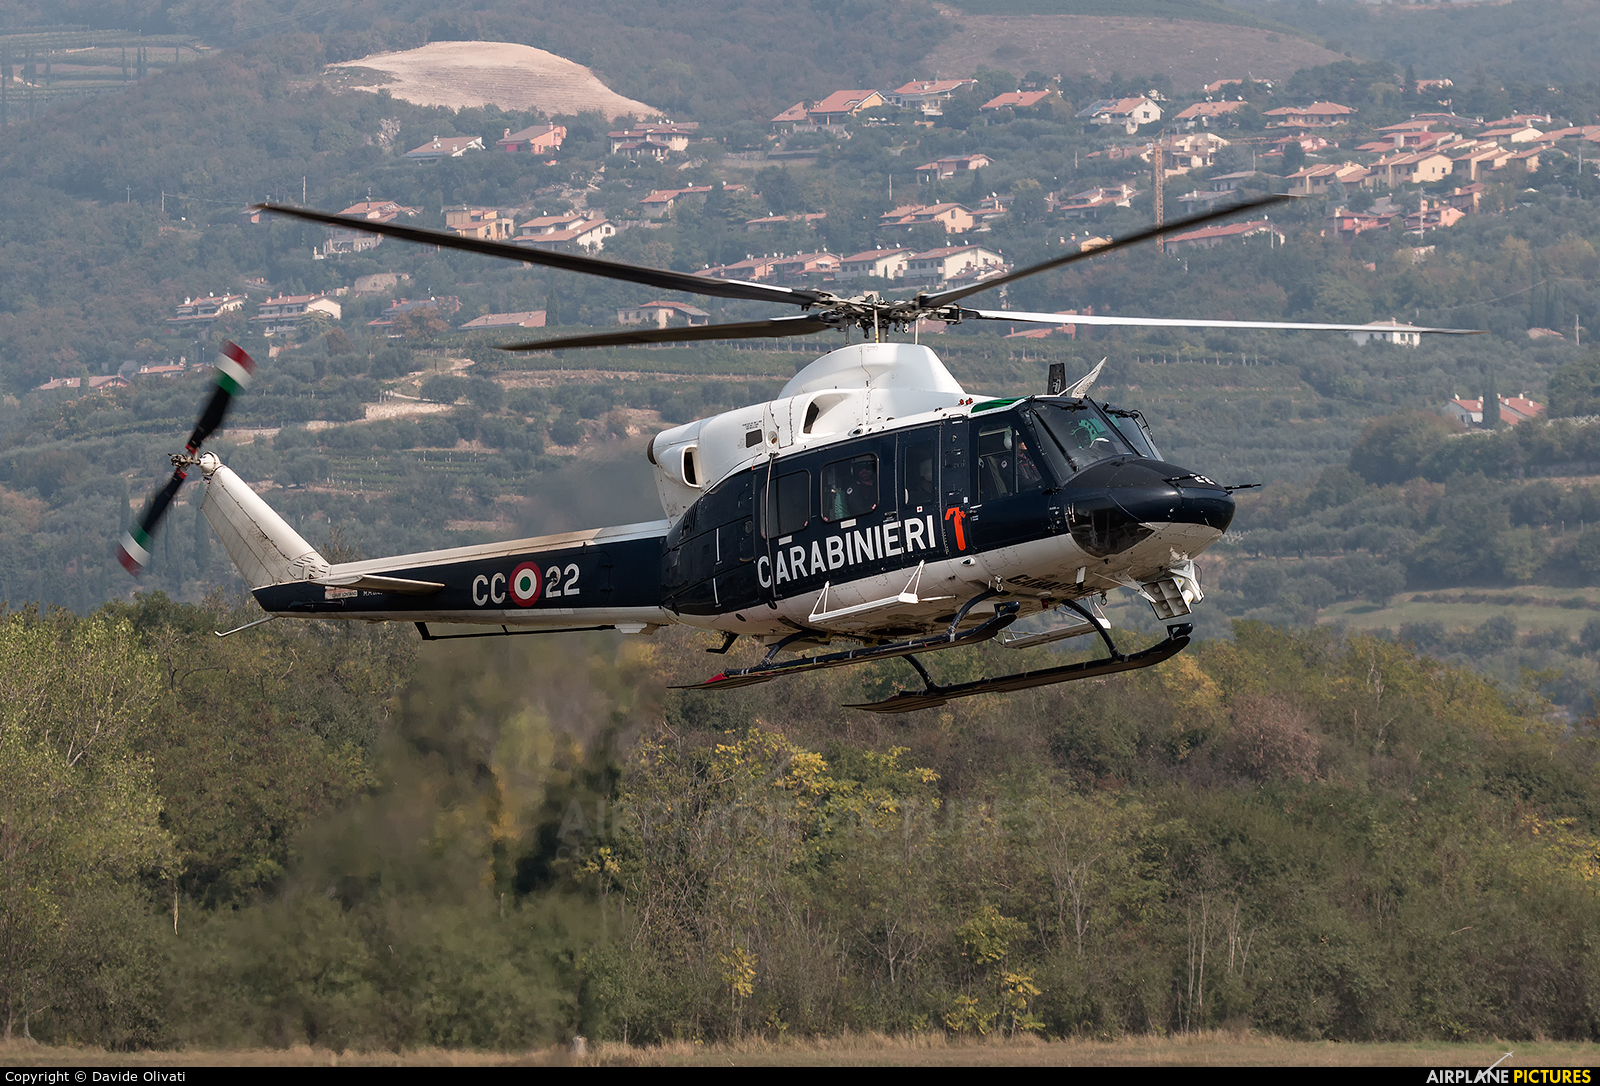 Italy - Carabinieri MM81436 aircraft at Verona - Boscomantico